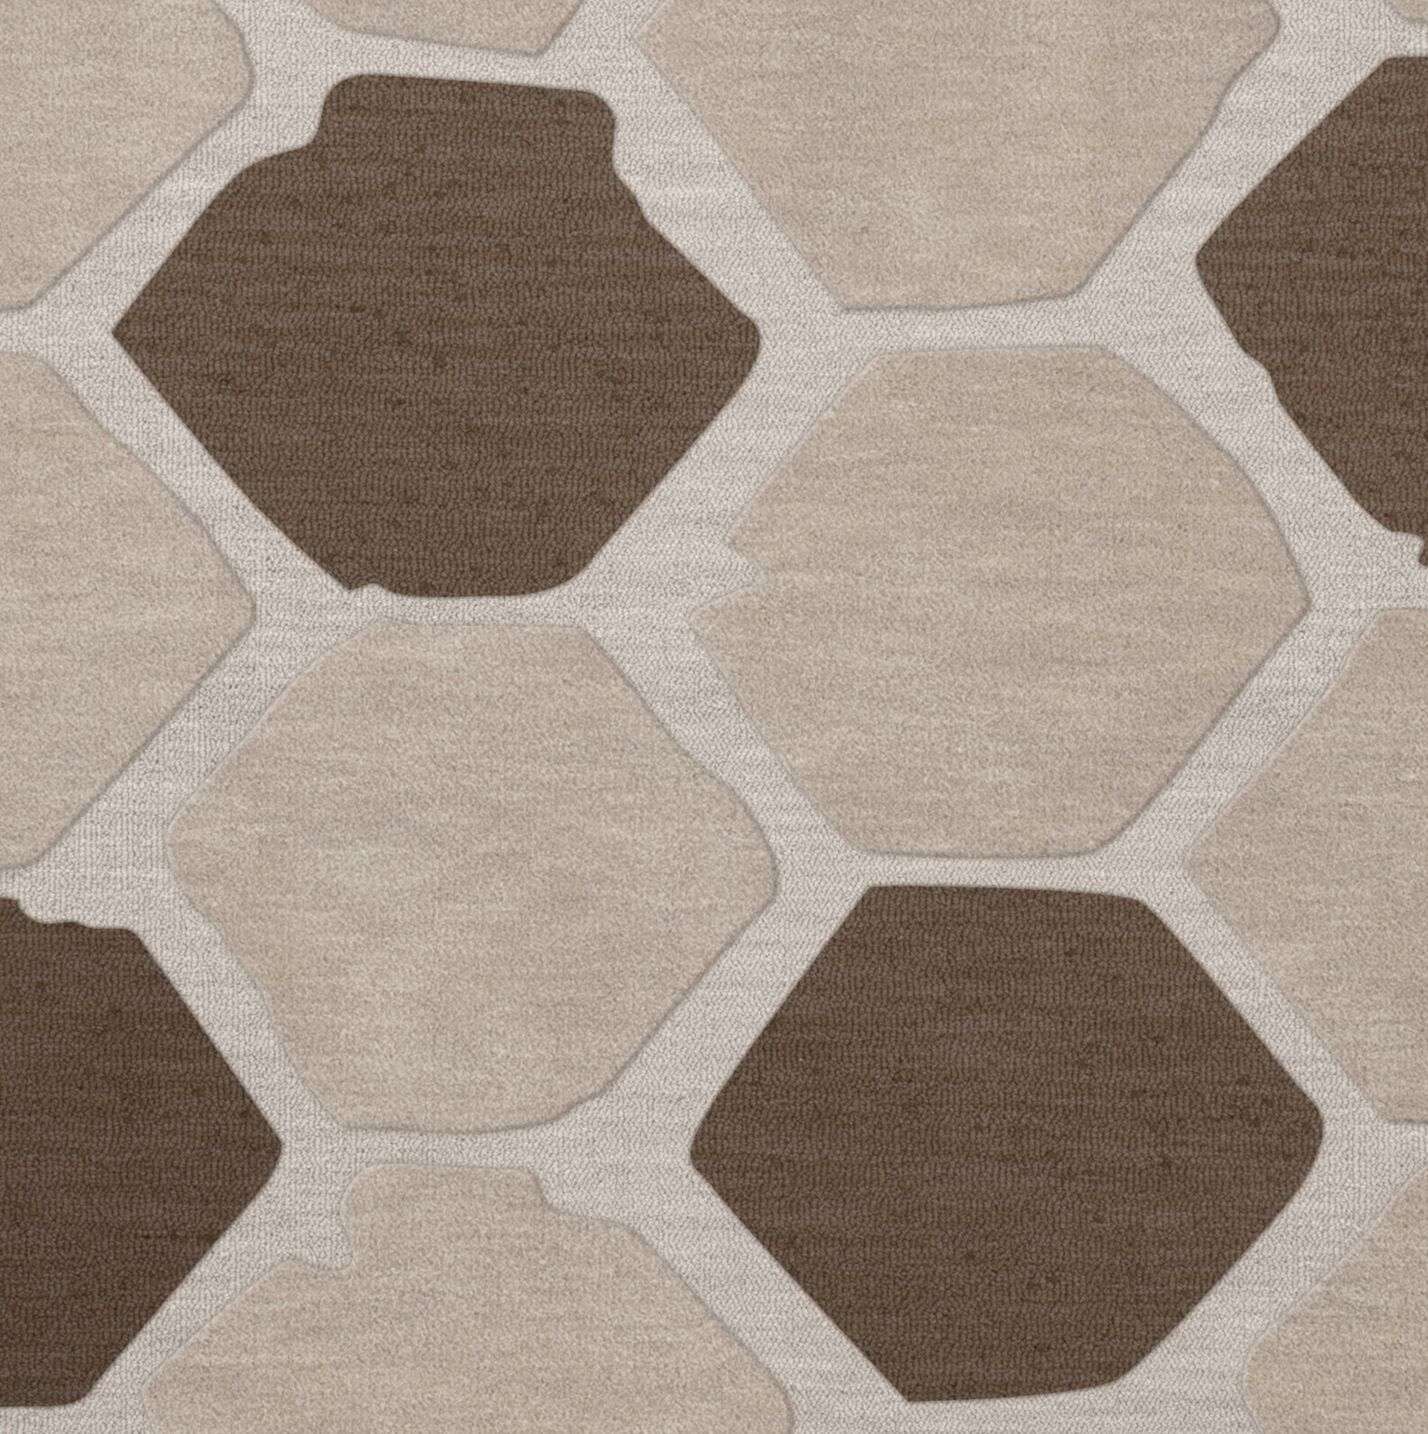 Dunson Wool Croissant Area Rug Rug Size: Square 4'